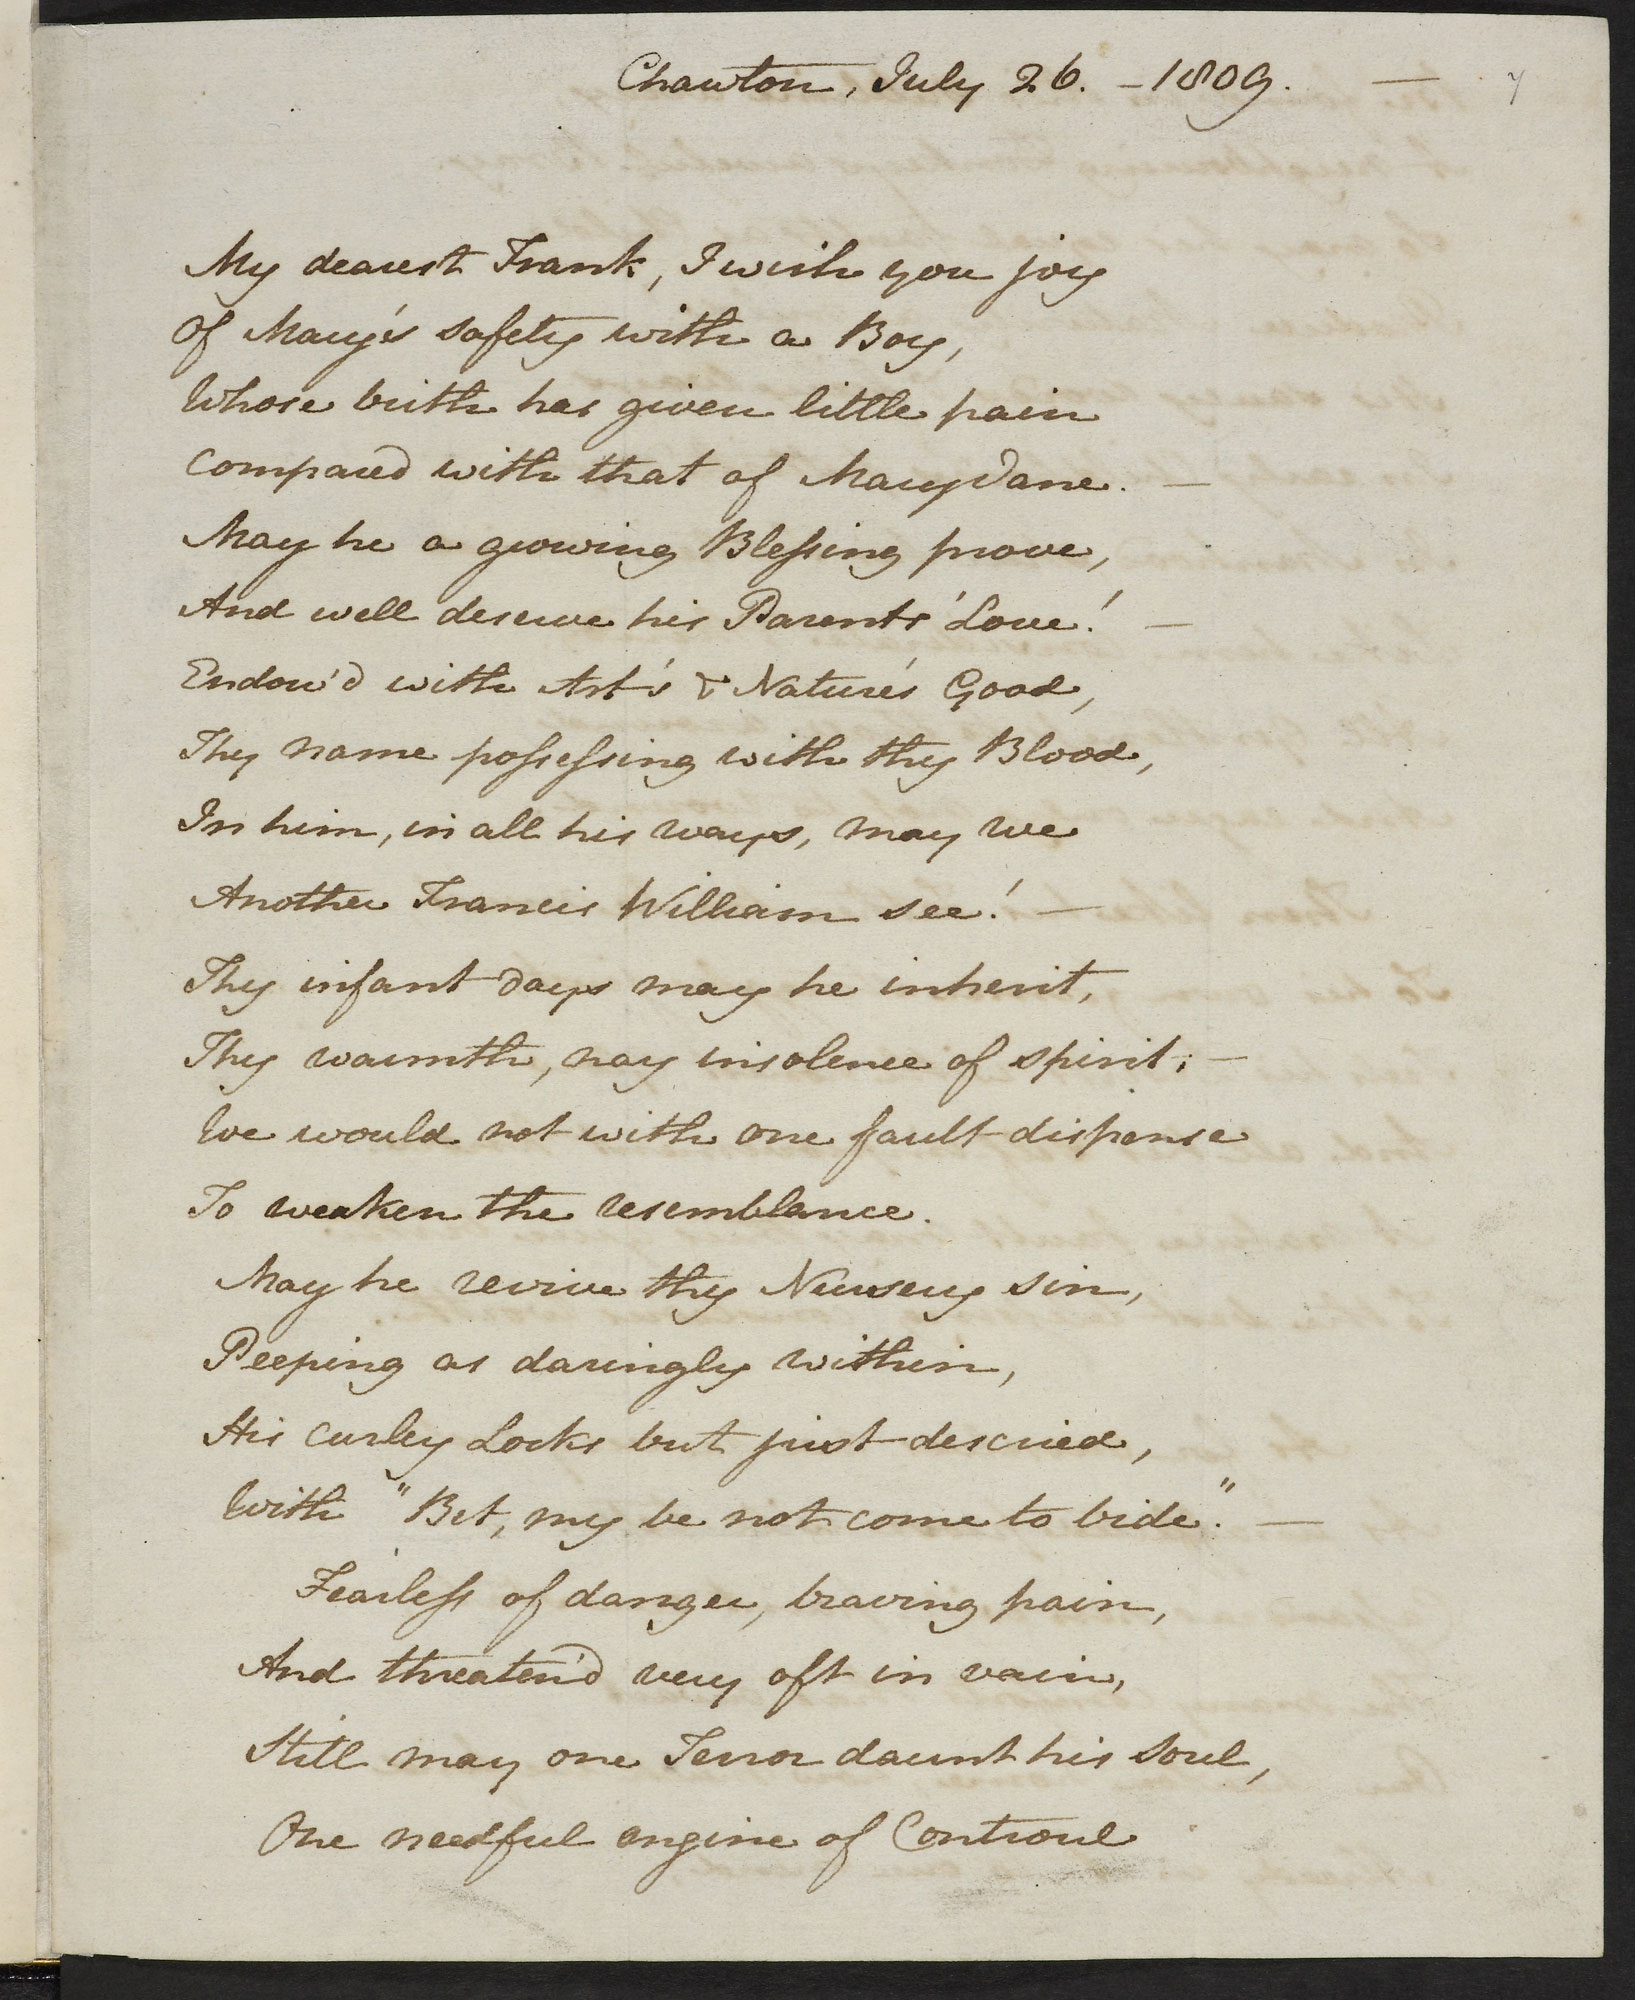 Letter from Jane Austen to her brother Frank, 1809 [folio: f. 7r]